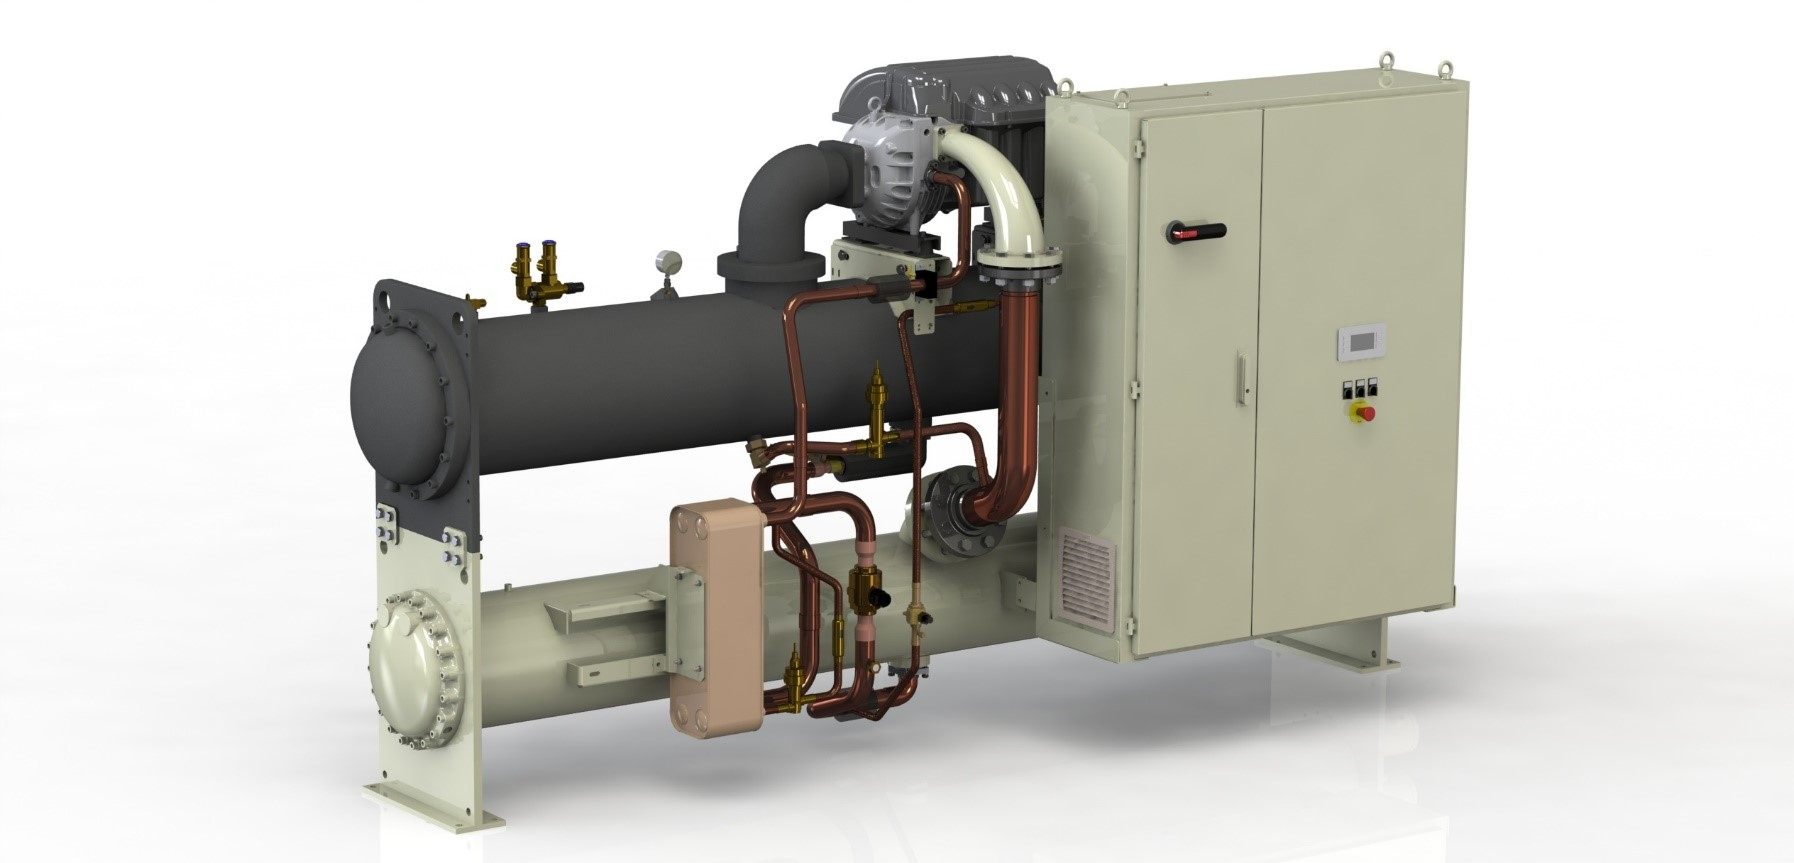 Daikin Applied introduces innovative new oil-free chiller